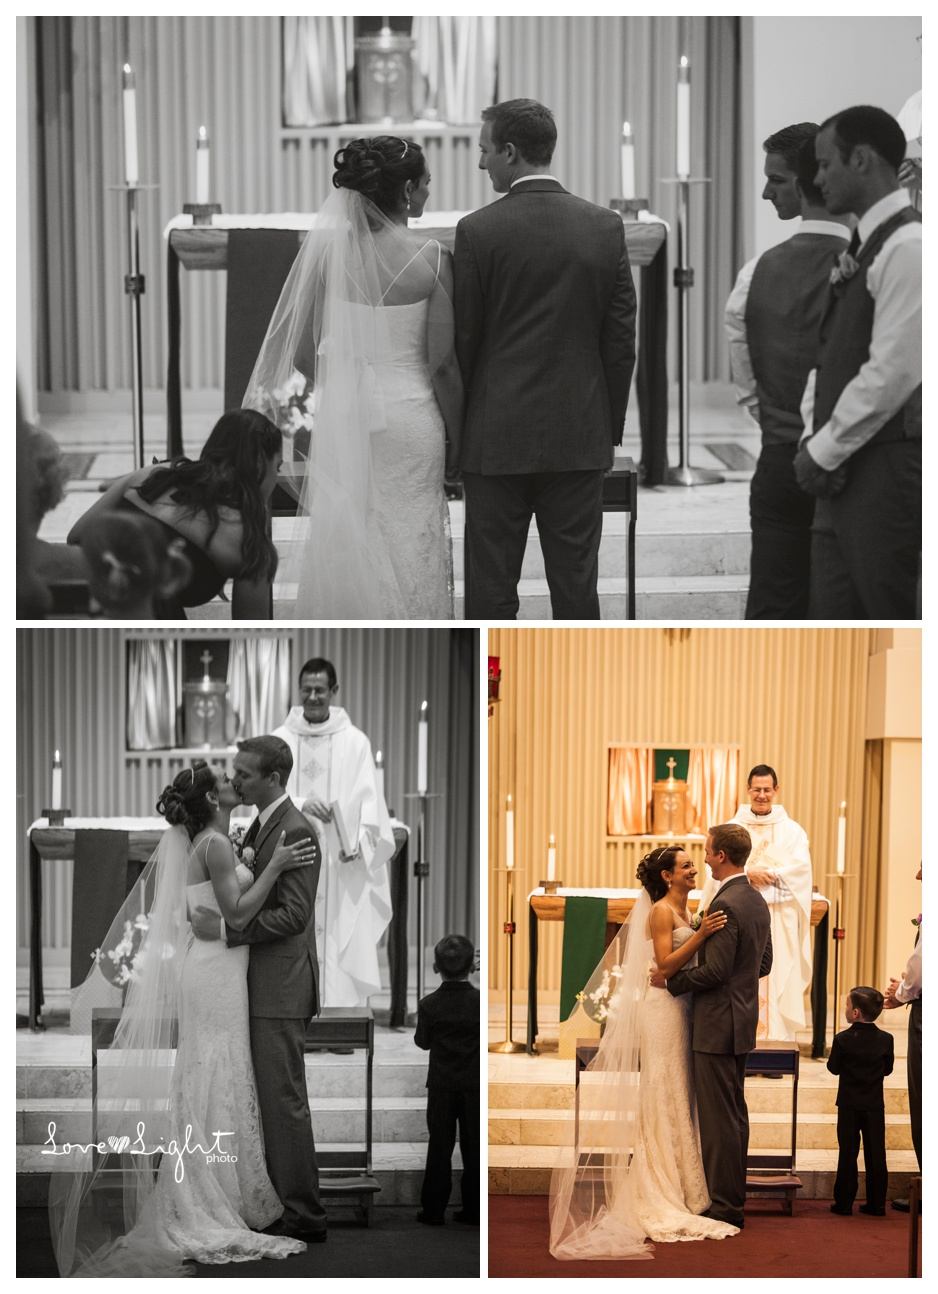 St Raymond Catholic Church Wedding